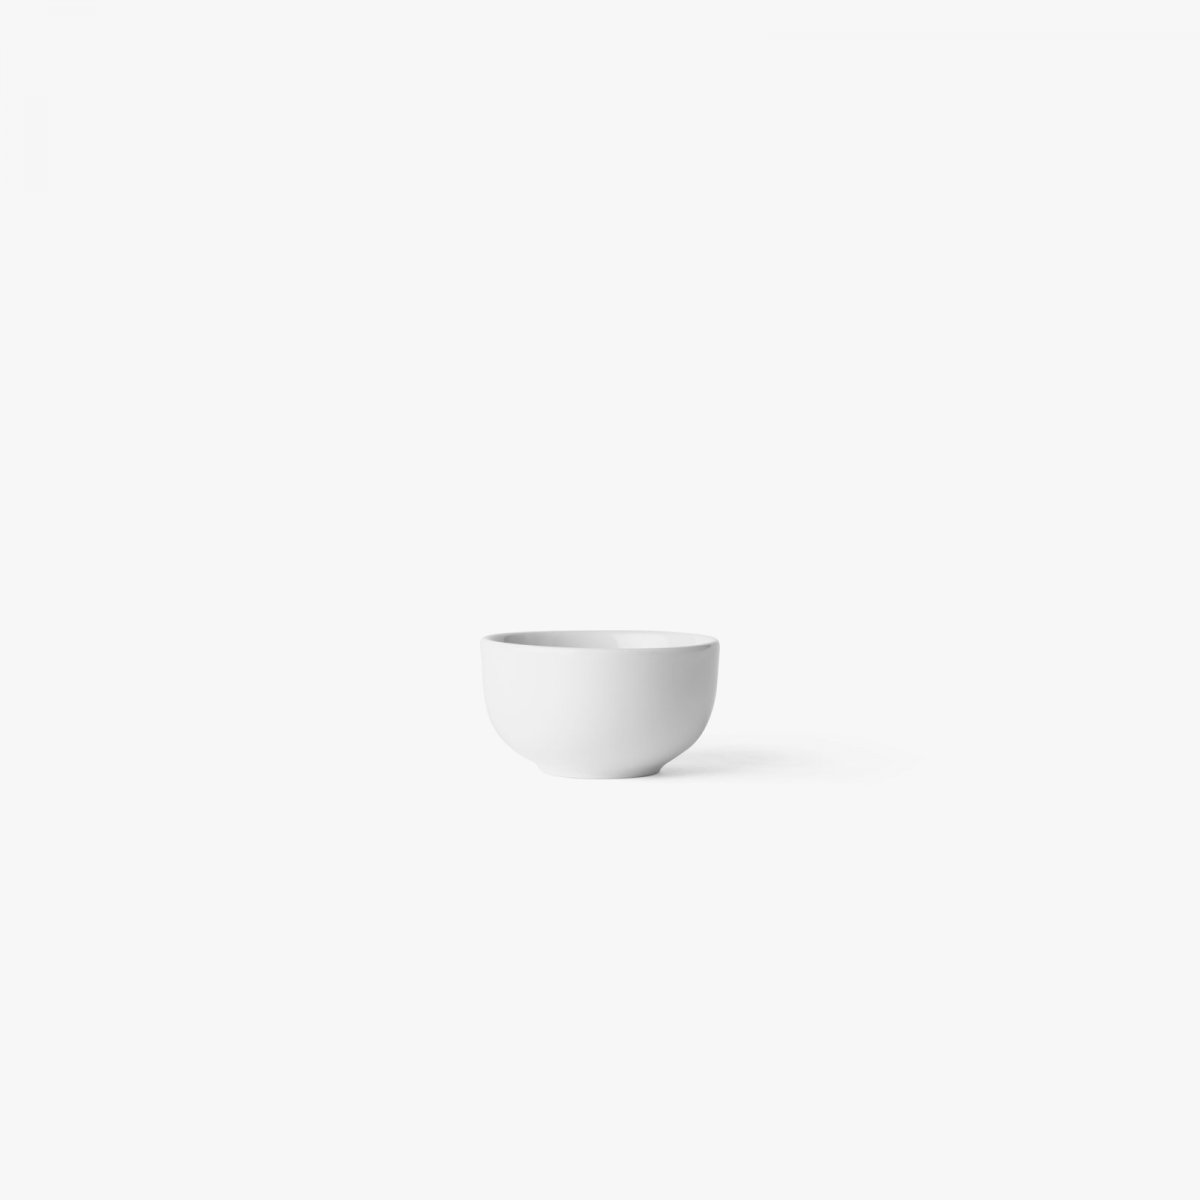 New Norm Bowl, Ø 7.5 cm, white.